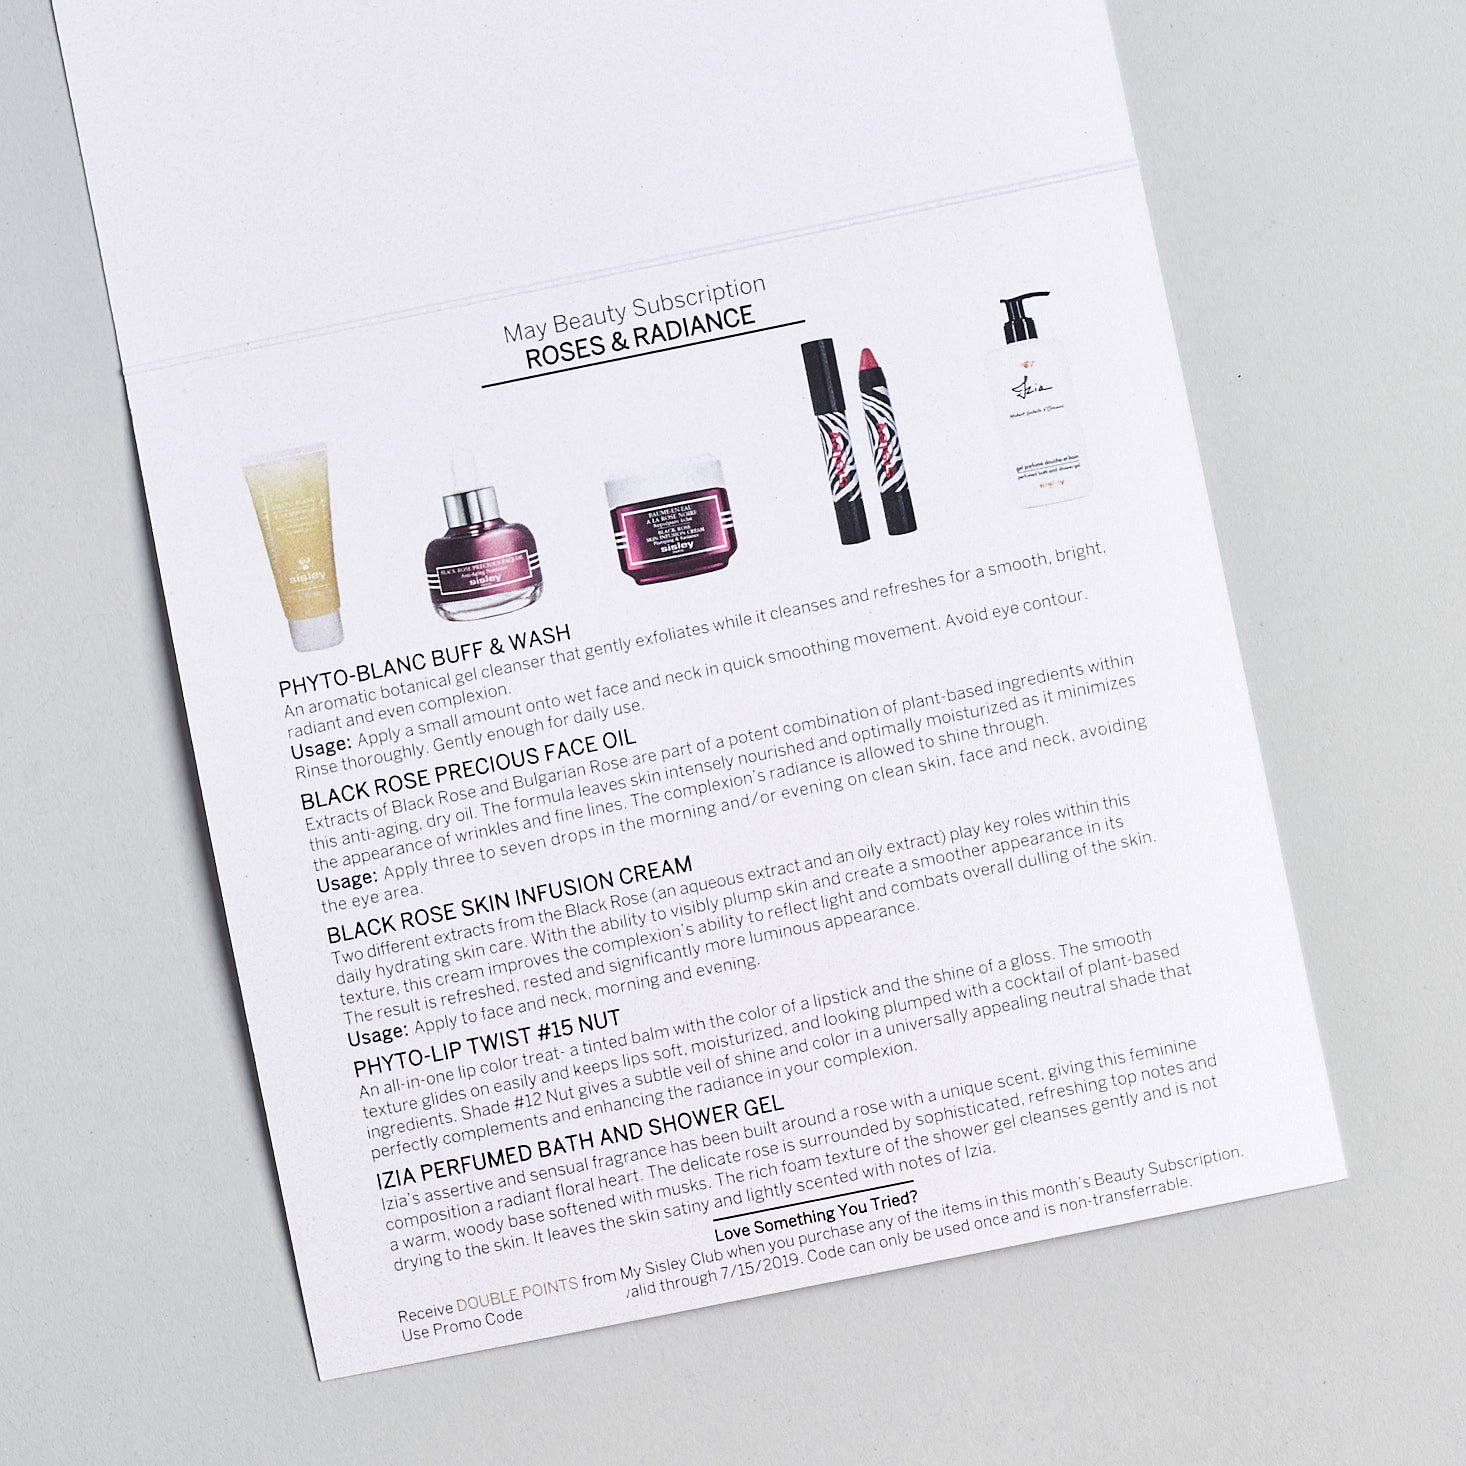 Sisley June 2019 Review product info